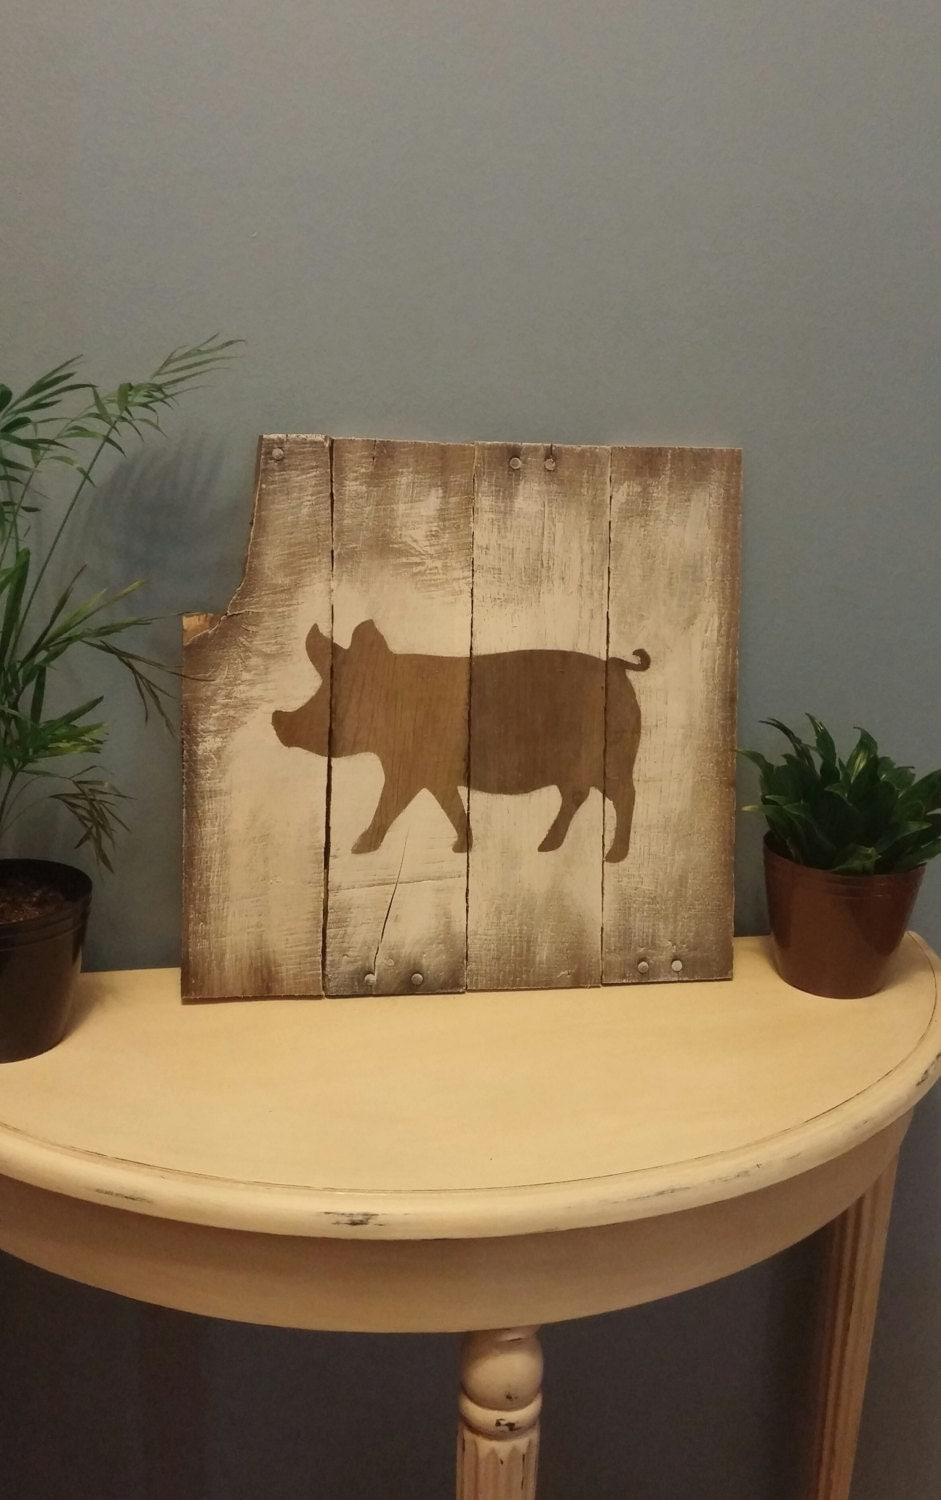 Pig picture pallet wood sign kitchen decor hog by trishawatson Pig kitchen decor